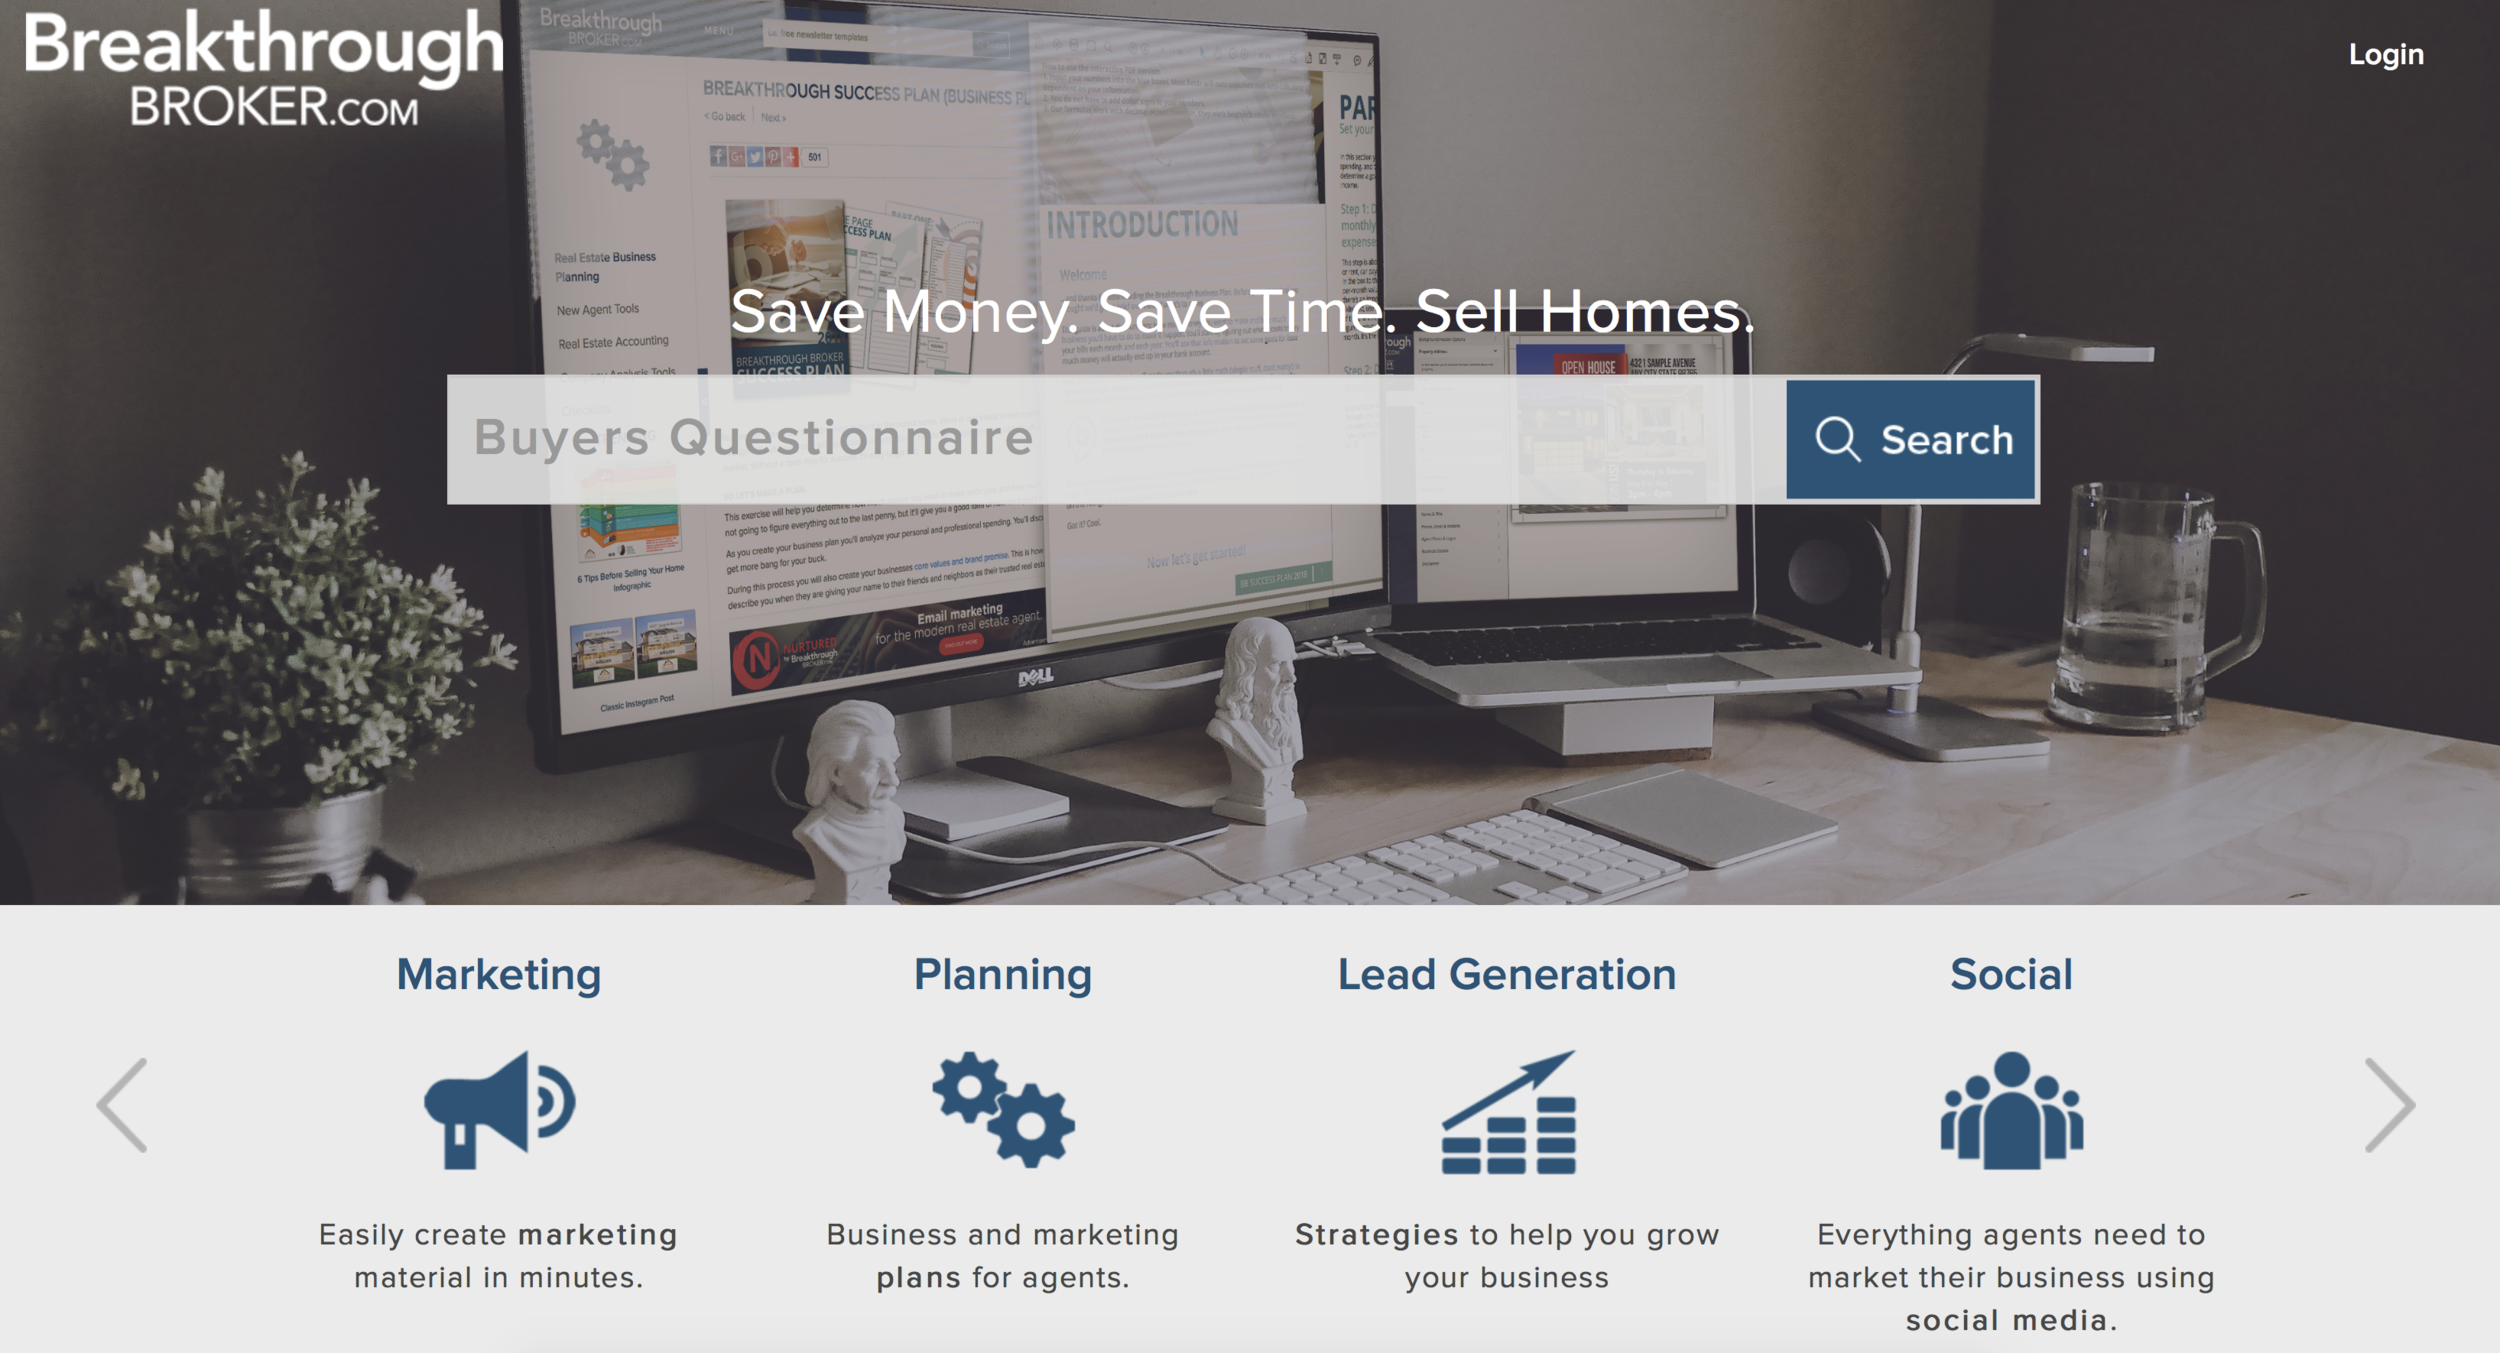 Break Through Broker - Great free material for marketing and ideas in real estate